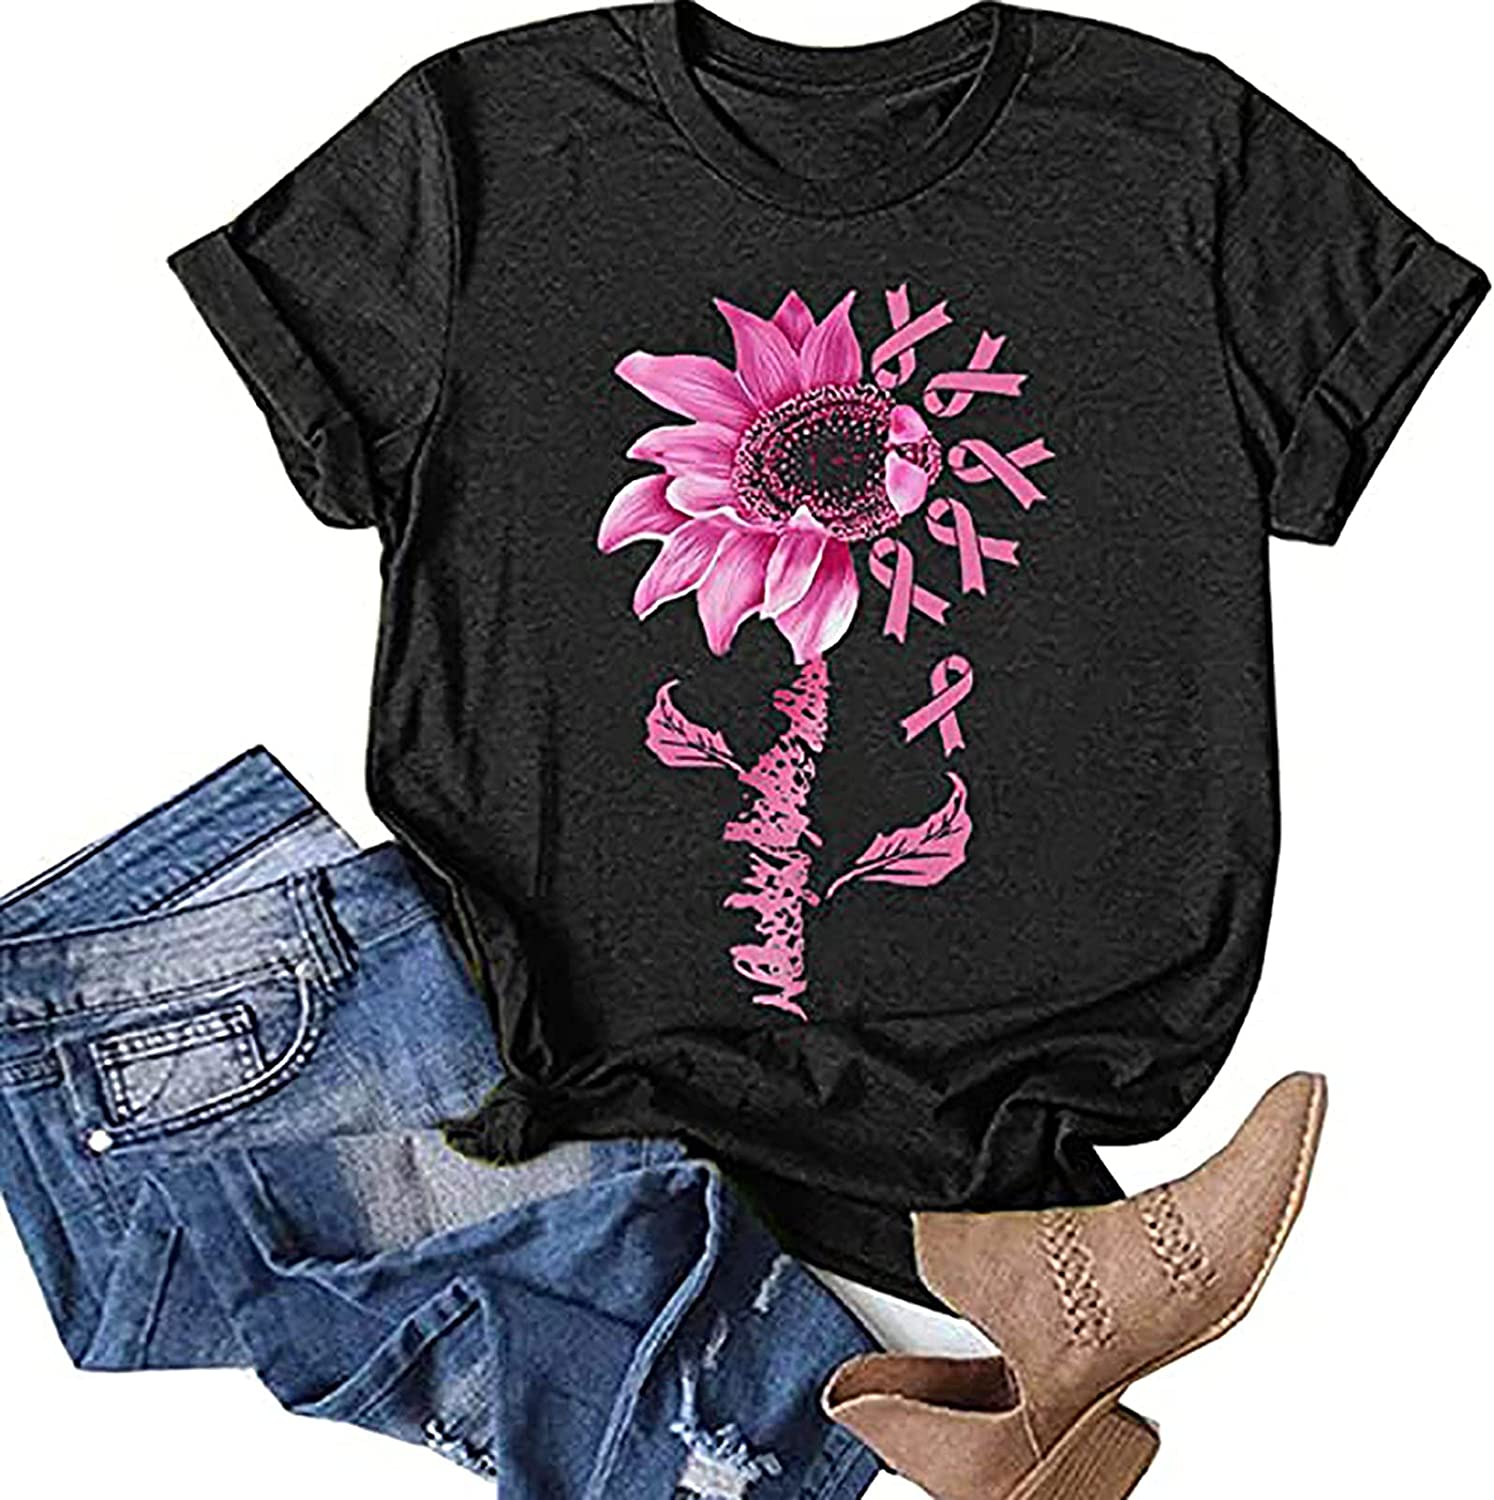 Womens Summer Workout Tshirt Tops Plus Size Short Sleeve Casual Loose Tunic Tees Sunflower Printed O-Neck Comfy Blouse